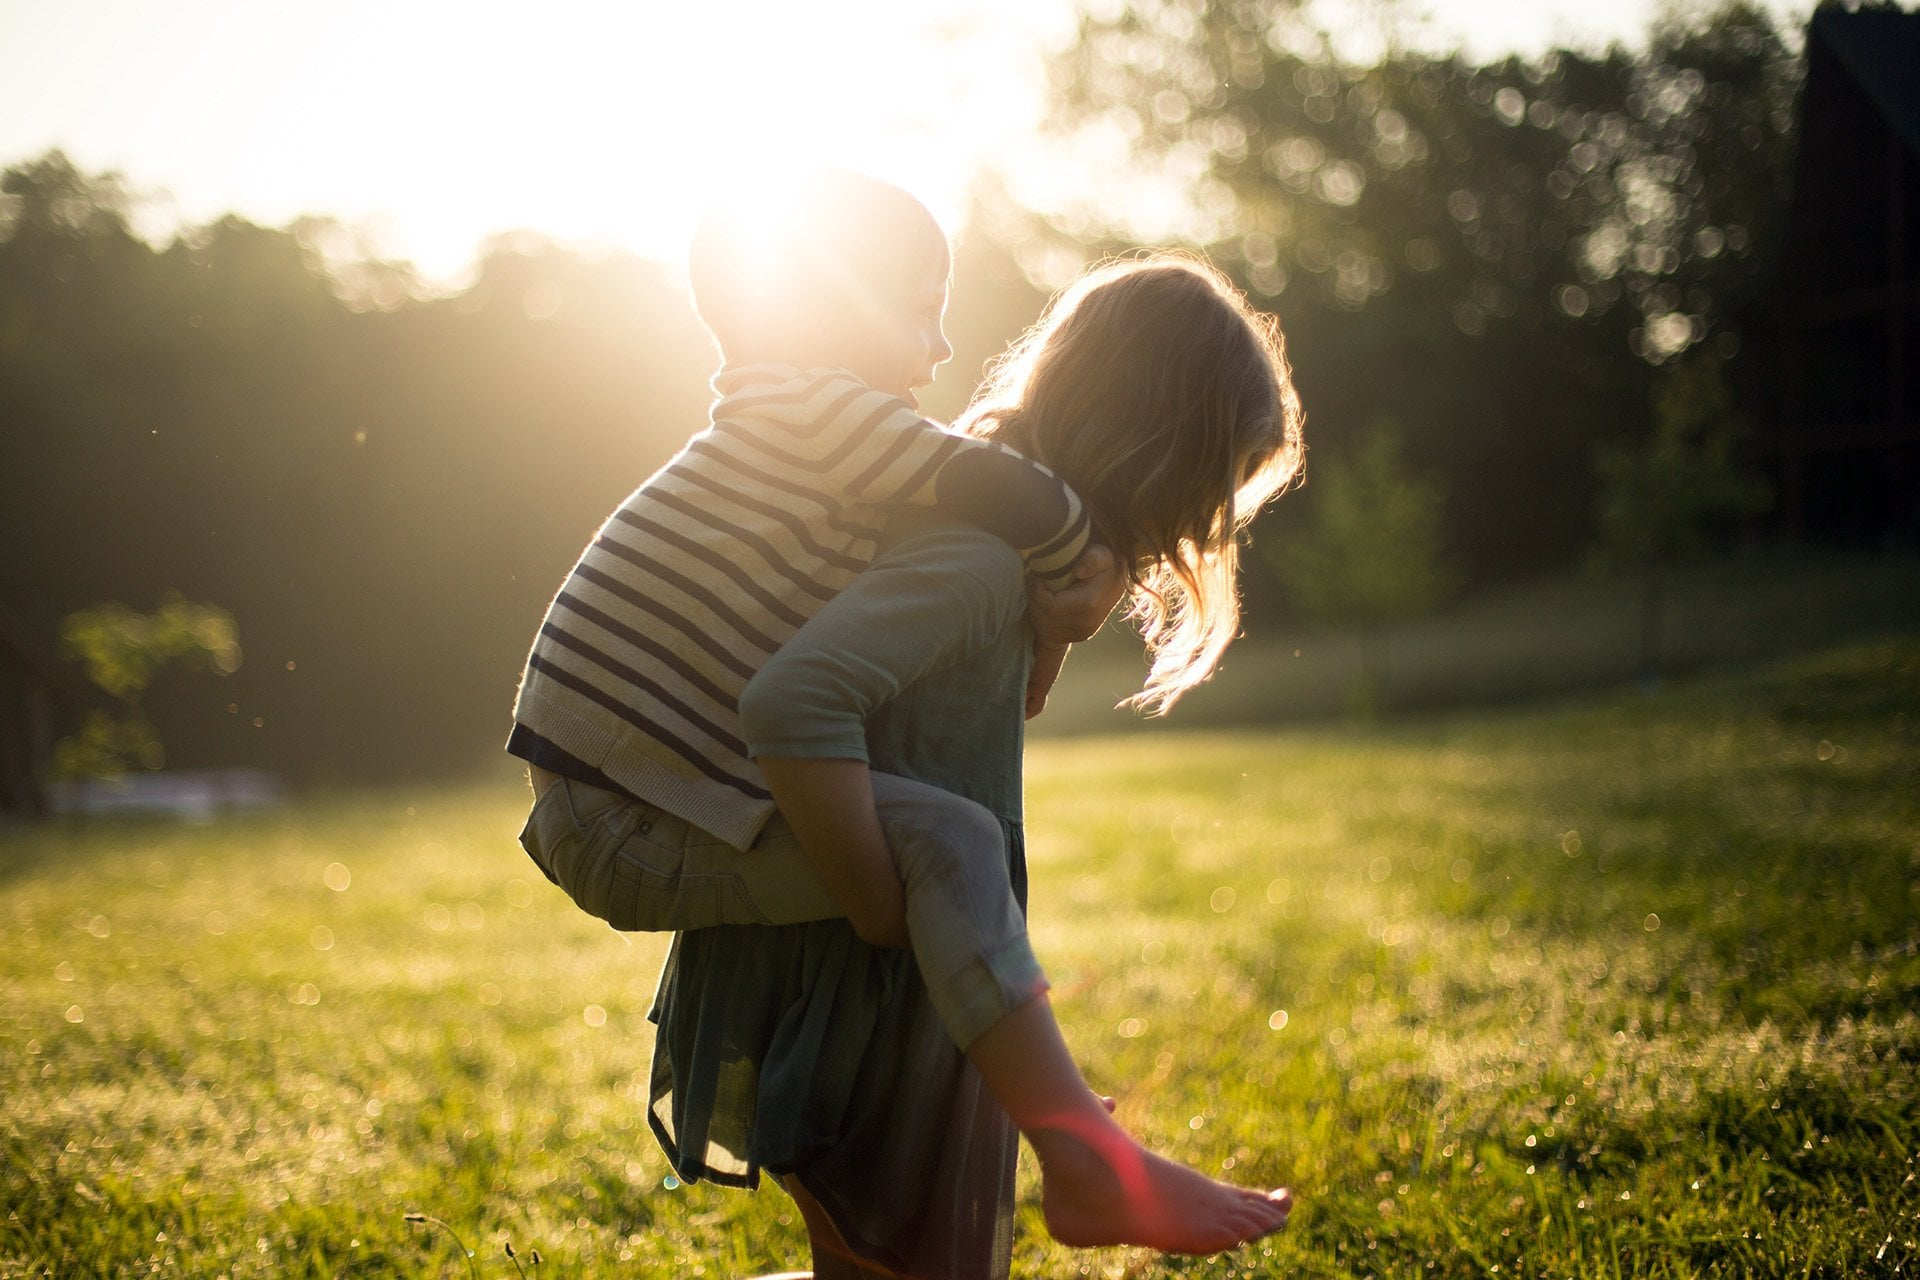 Sister giving Brother a piggyback ride at dawn in a field